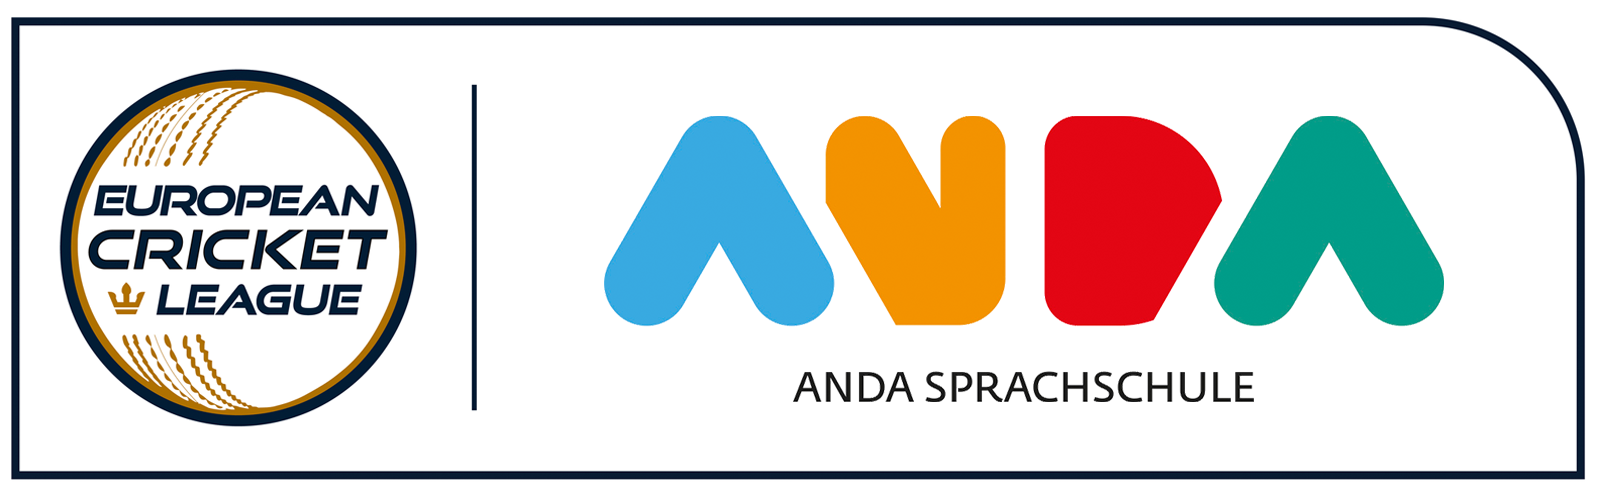 ANDA 1600x900_White copy.png